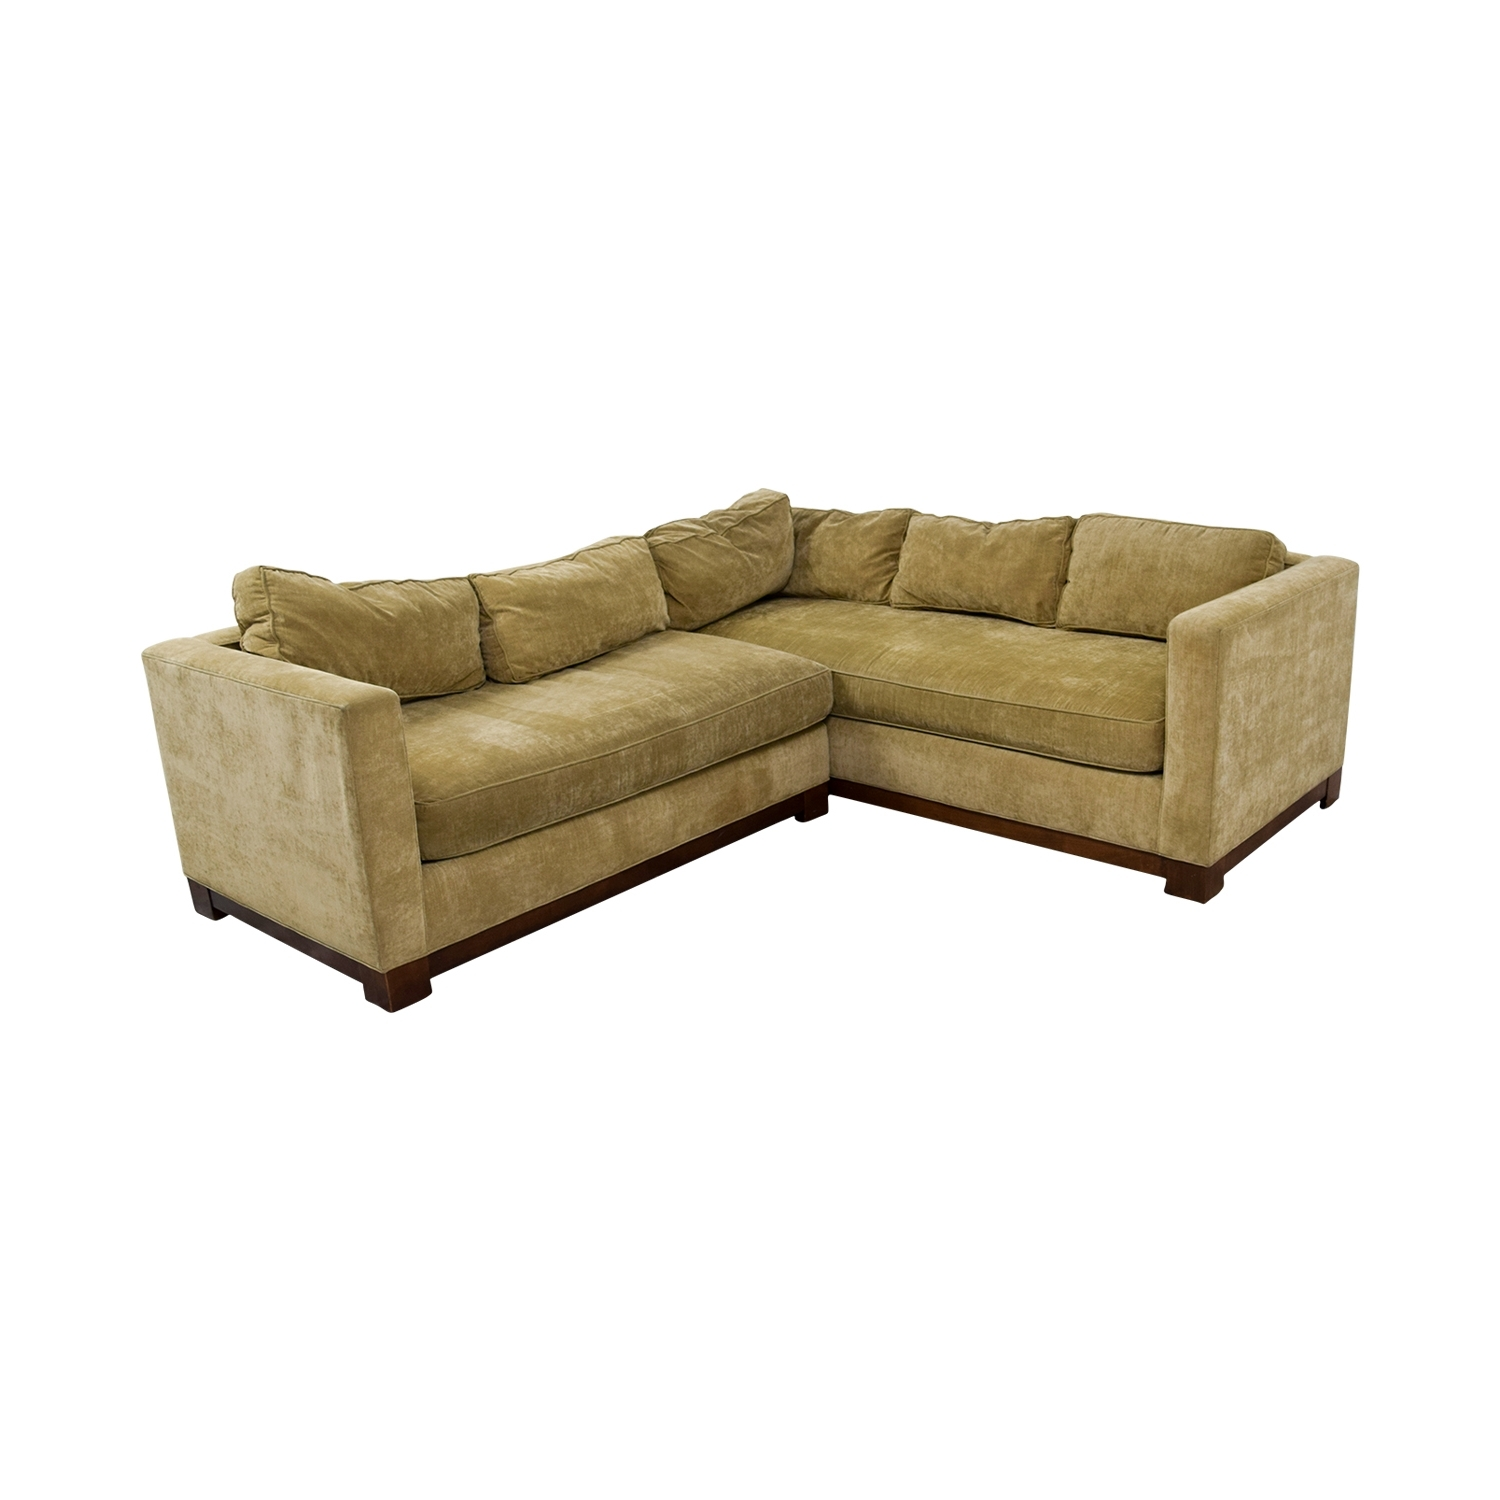 [%84% Off – Mitchell Gold + Bob Williams Mitchell Gold + Bob Intended For Famous Gold Sectional Sofas|Gold Sectional Sofas Inside Newest 84% Off – Mitchell Gold + Bob Williams Mitchell Gold + Bob|2018 Gold Sectional Sofas Inside 84% Off – Mitchell Gold + Bob Williams Mitchell Gold + Bob|Popular 84% Off – Mitchell Gold + Bob Williams Mitchell Gold + Bob Regarding Gold Sectional Sofas%] (View 3 of 20)